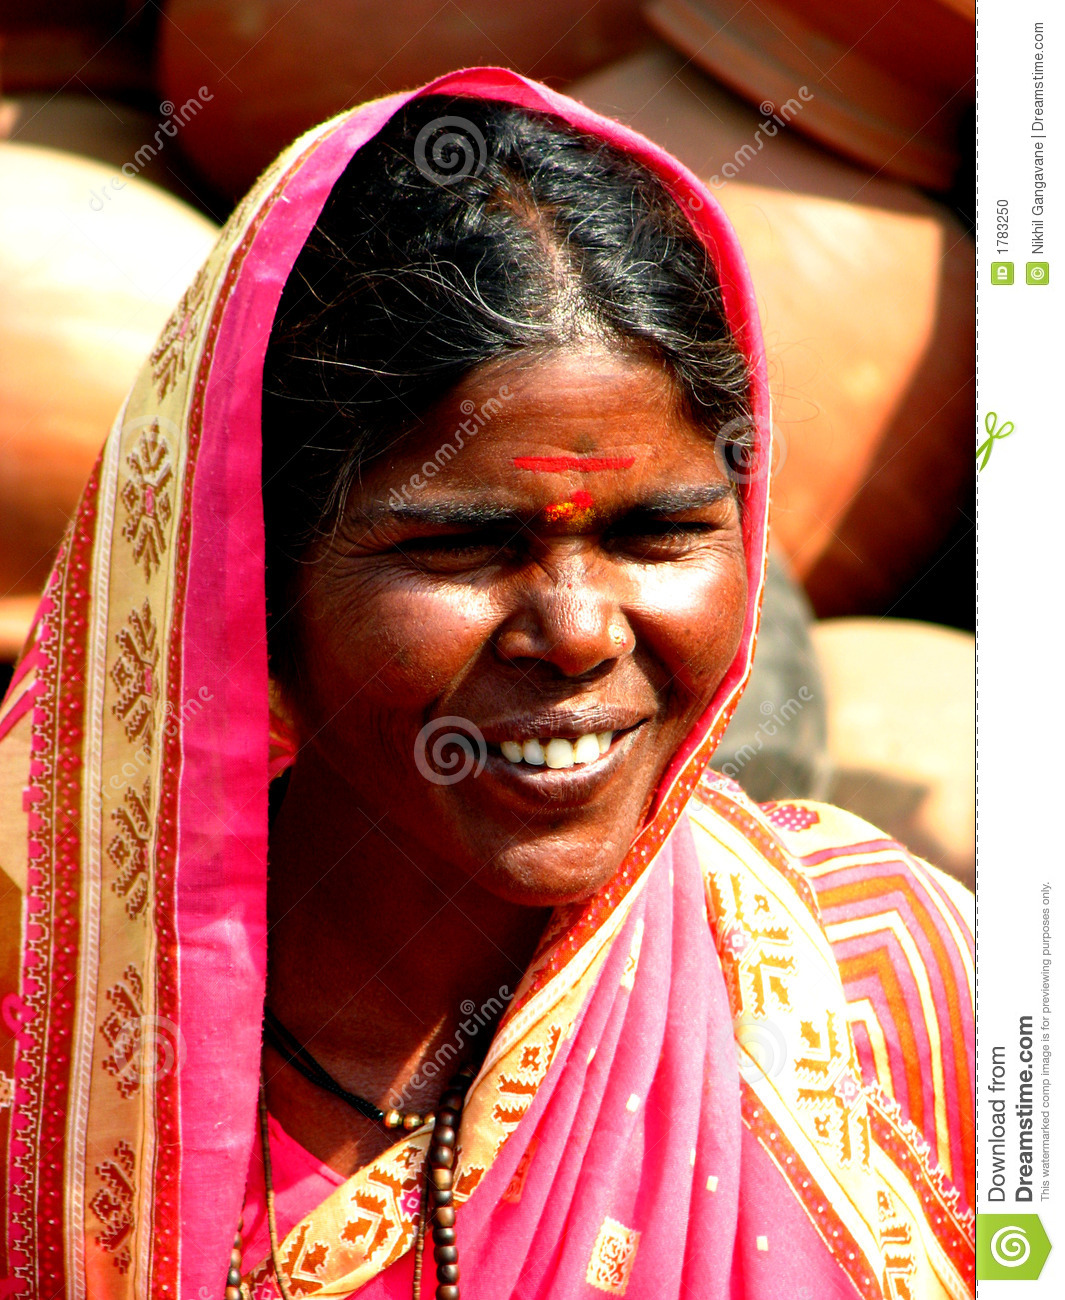 Indian Lady Stock Photo - Image 1783250-8155